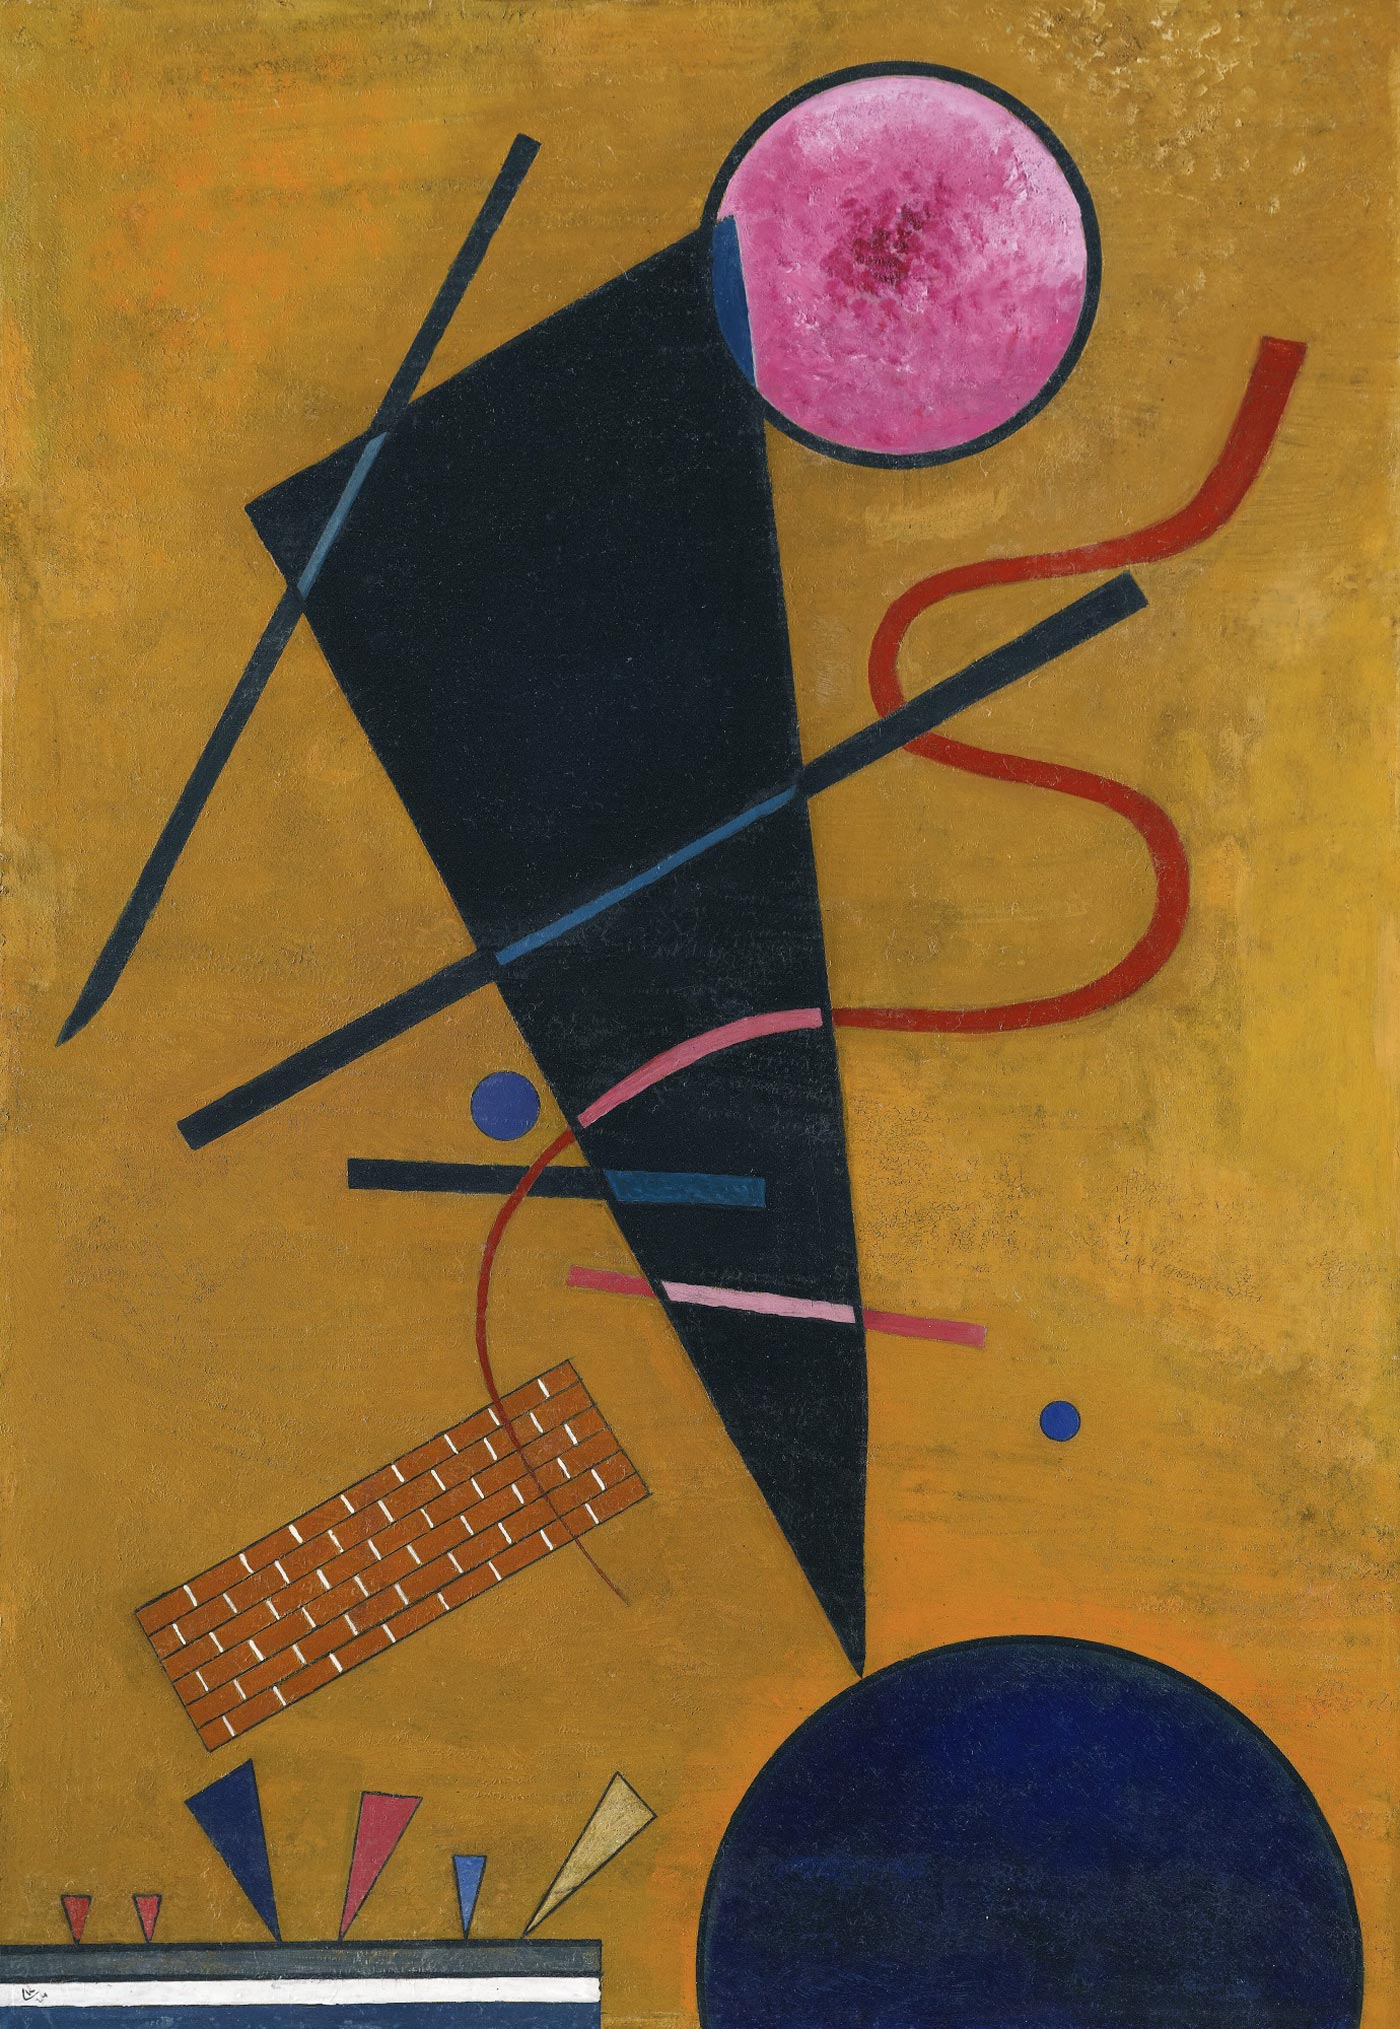 РЎontact (1924)  by Wassily Kandinsky